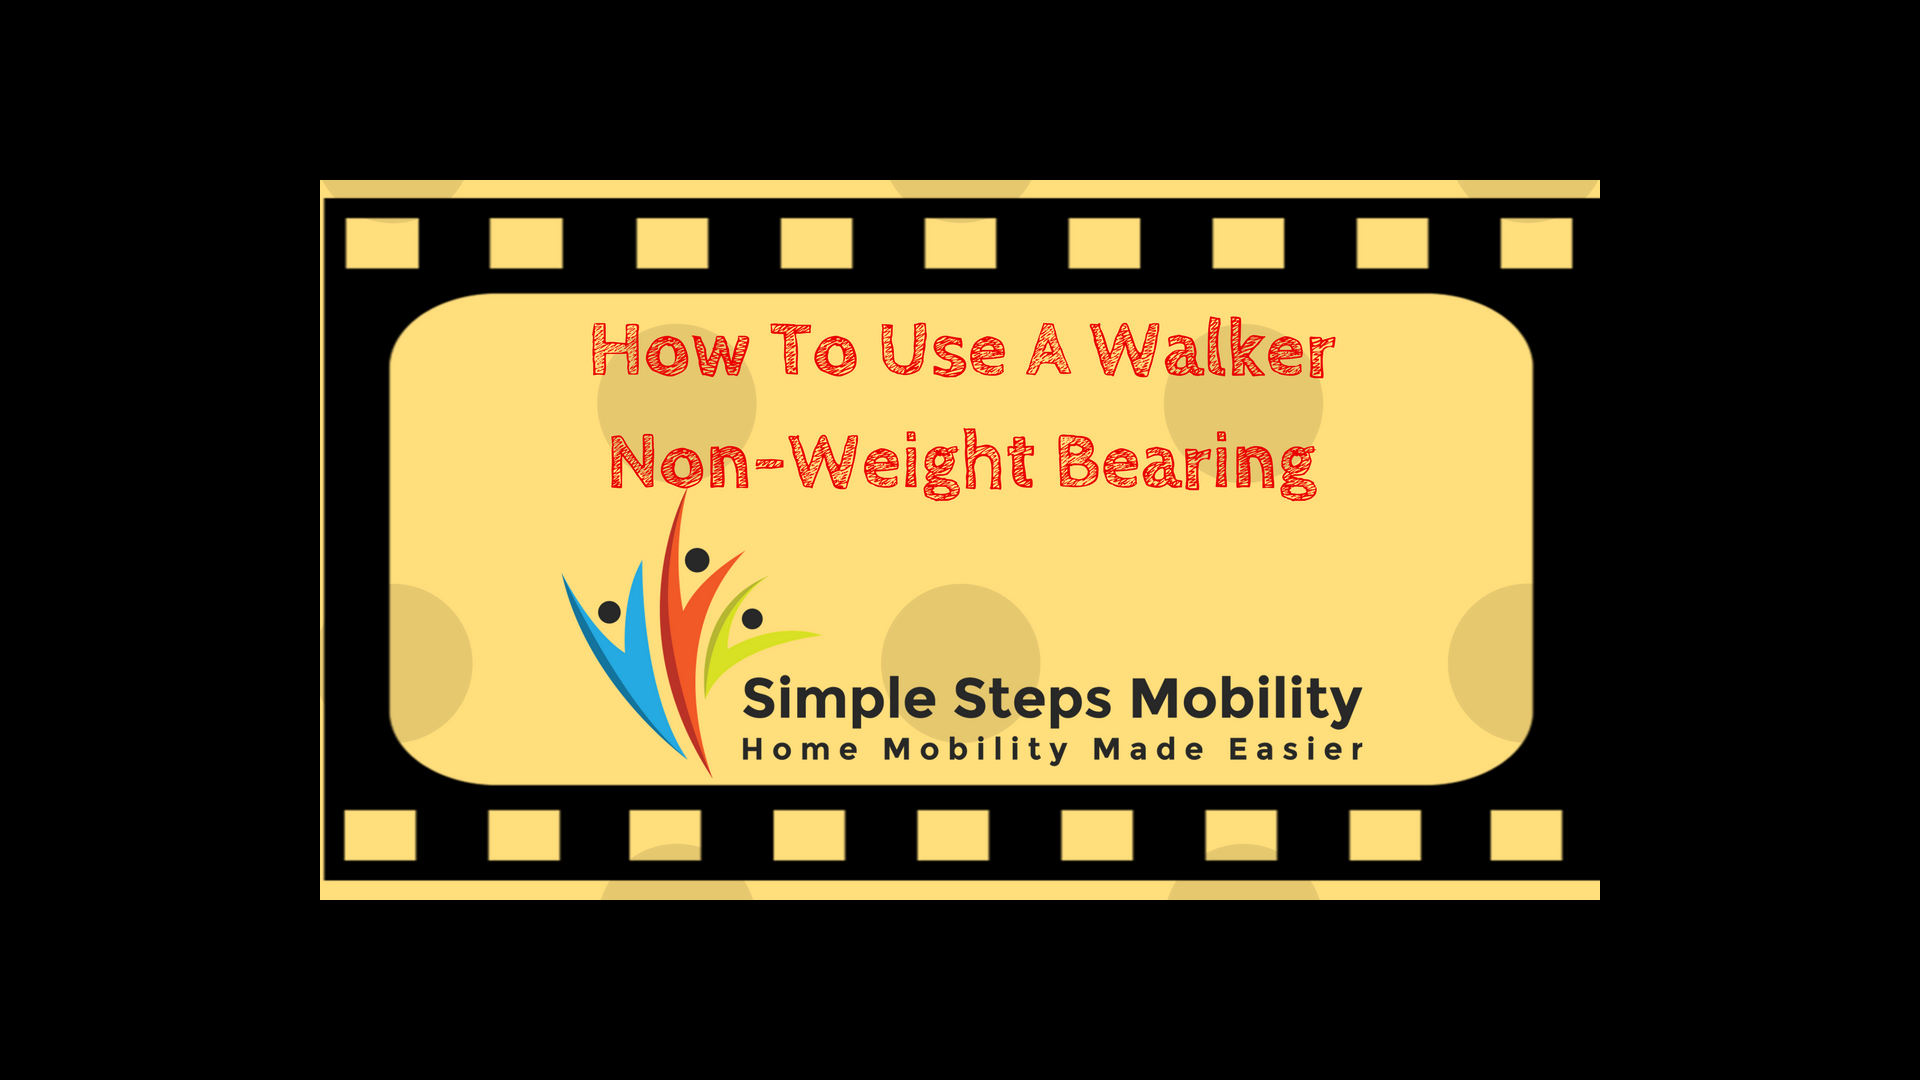 Using-Walker-Non-Weight-Bearing-Image